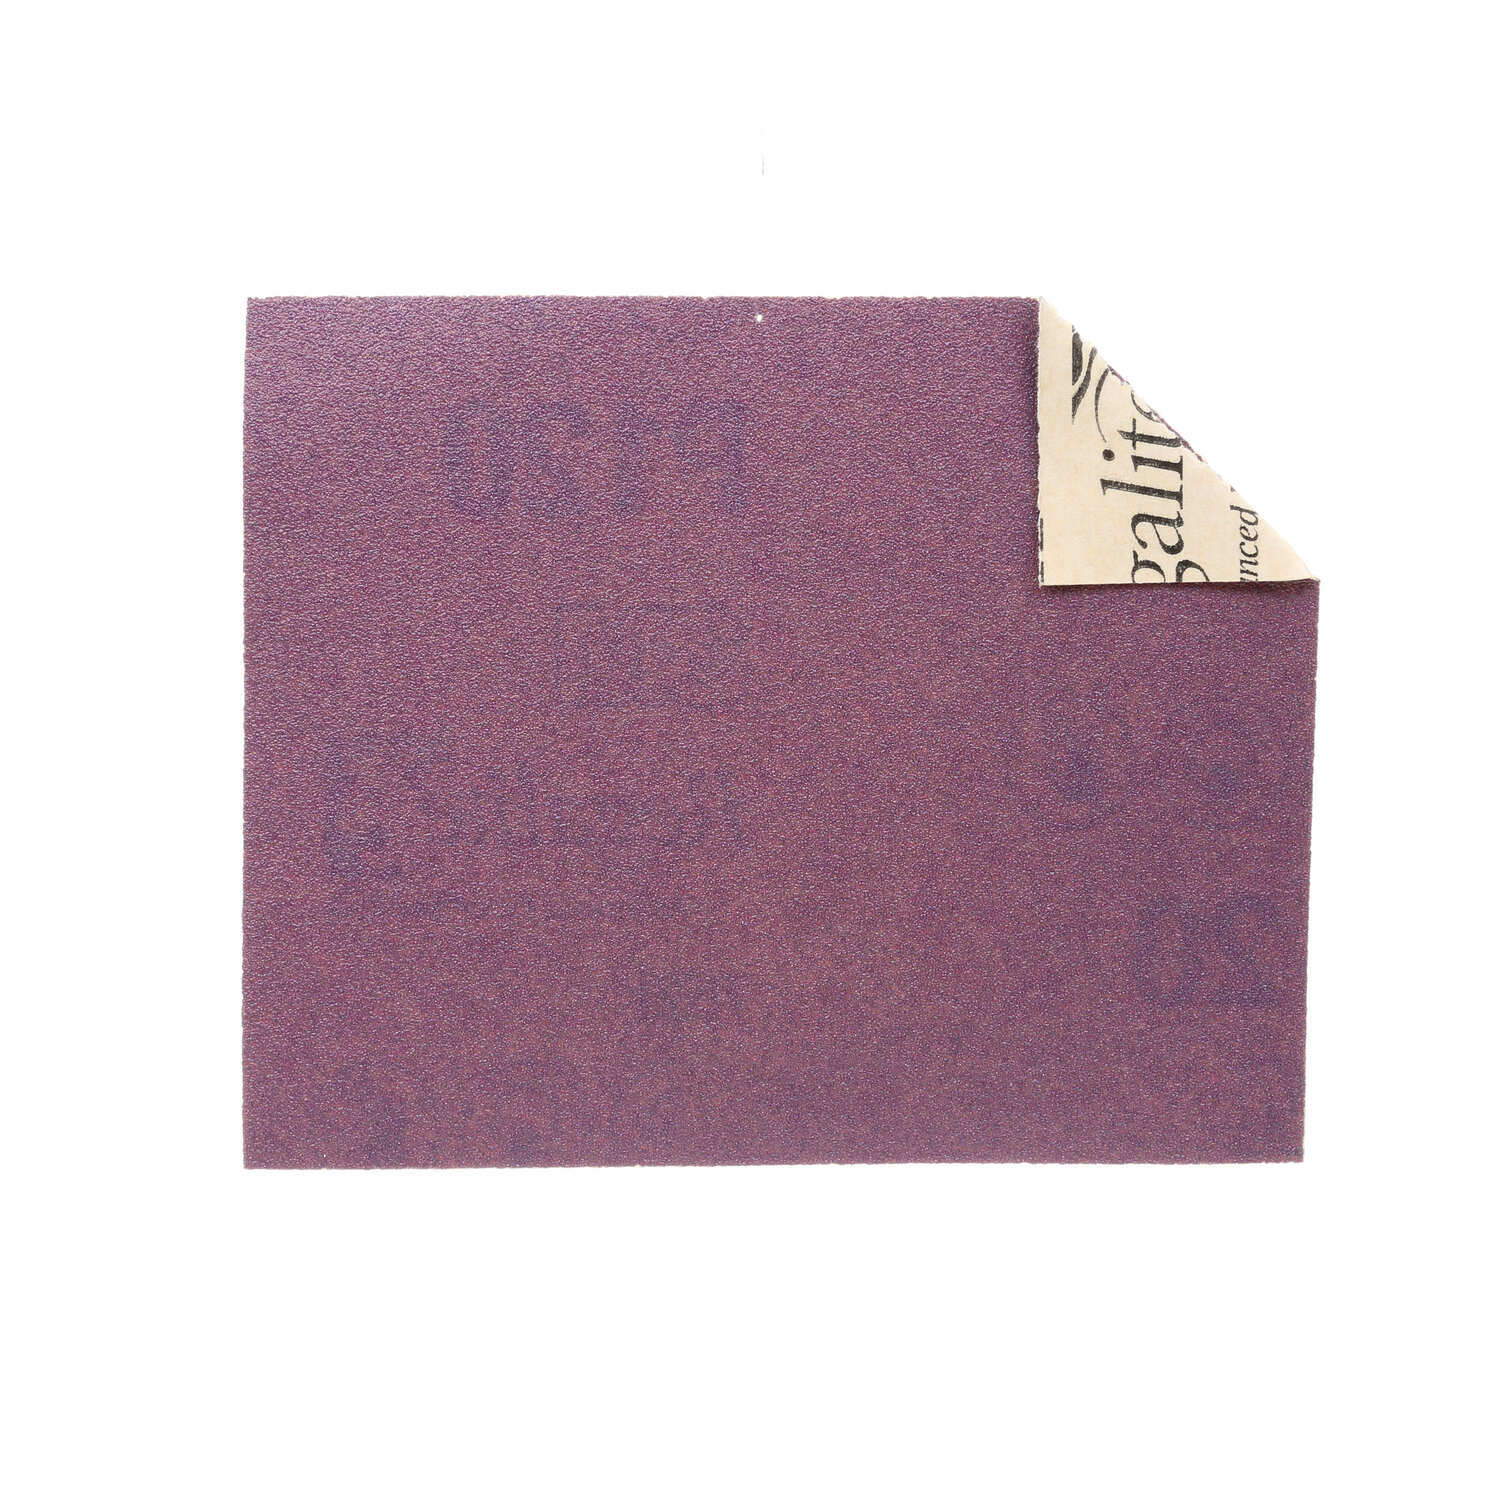 3M  Sandblaster  5-1/2 in. L x 5-1/2 in. L x 4-1/2 in. W Medium  120 Grit 4 pk 1/4 Sheet Sandpaper